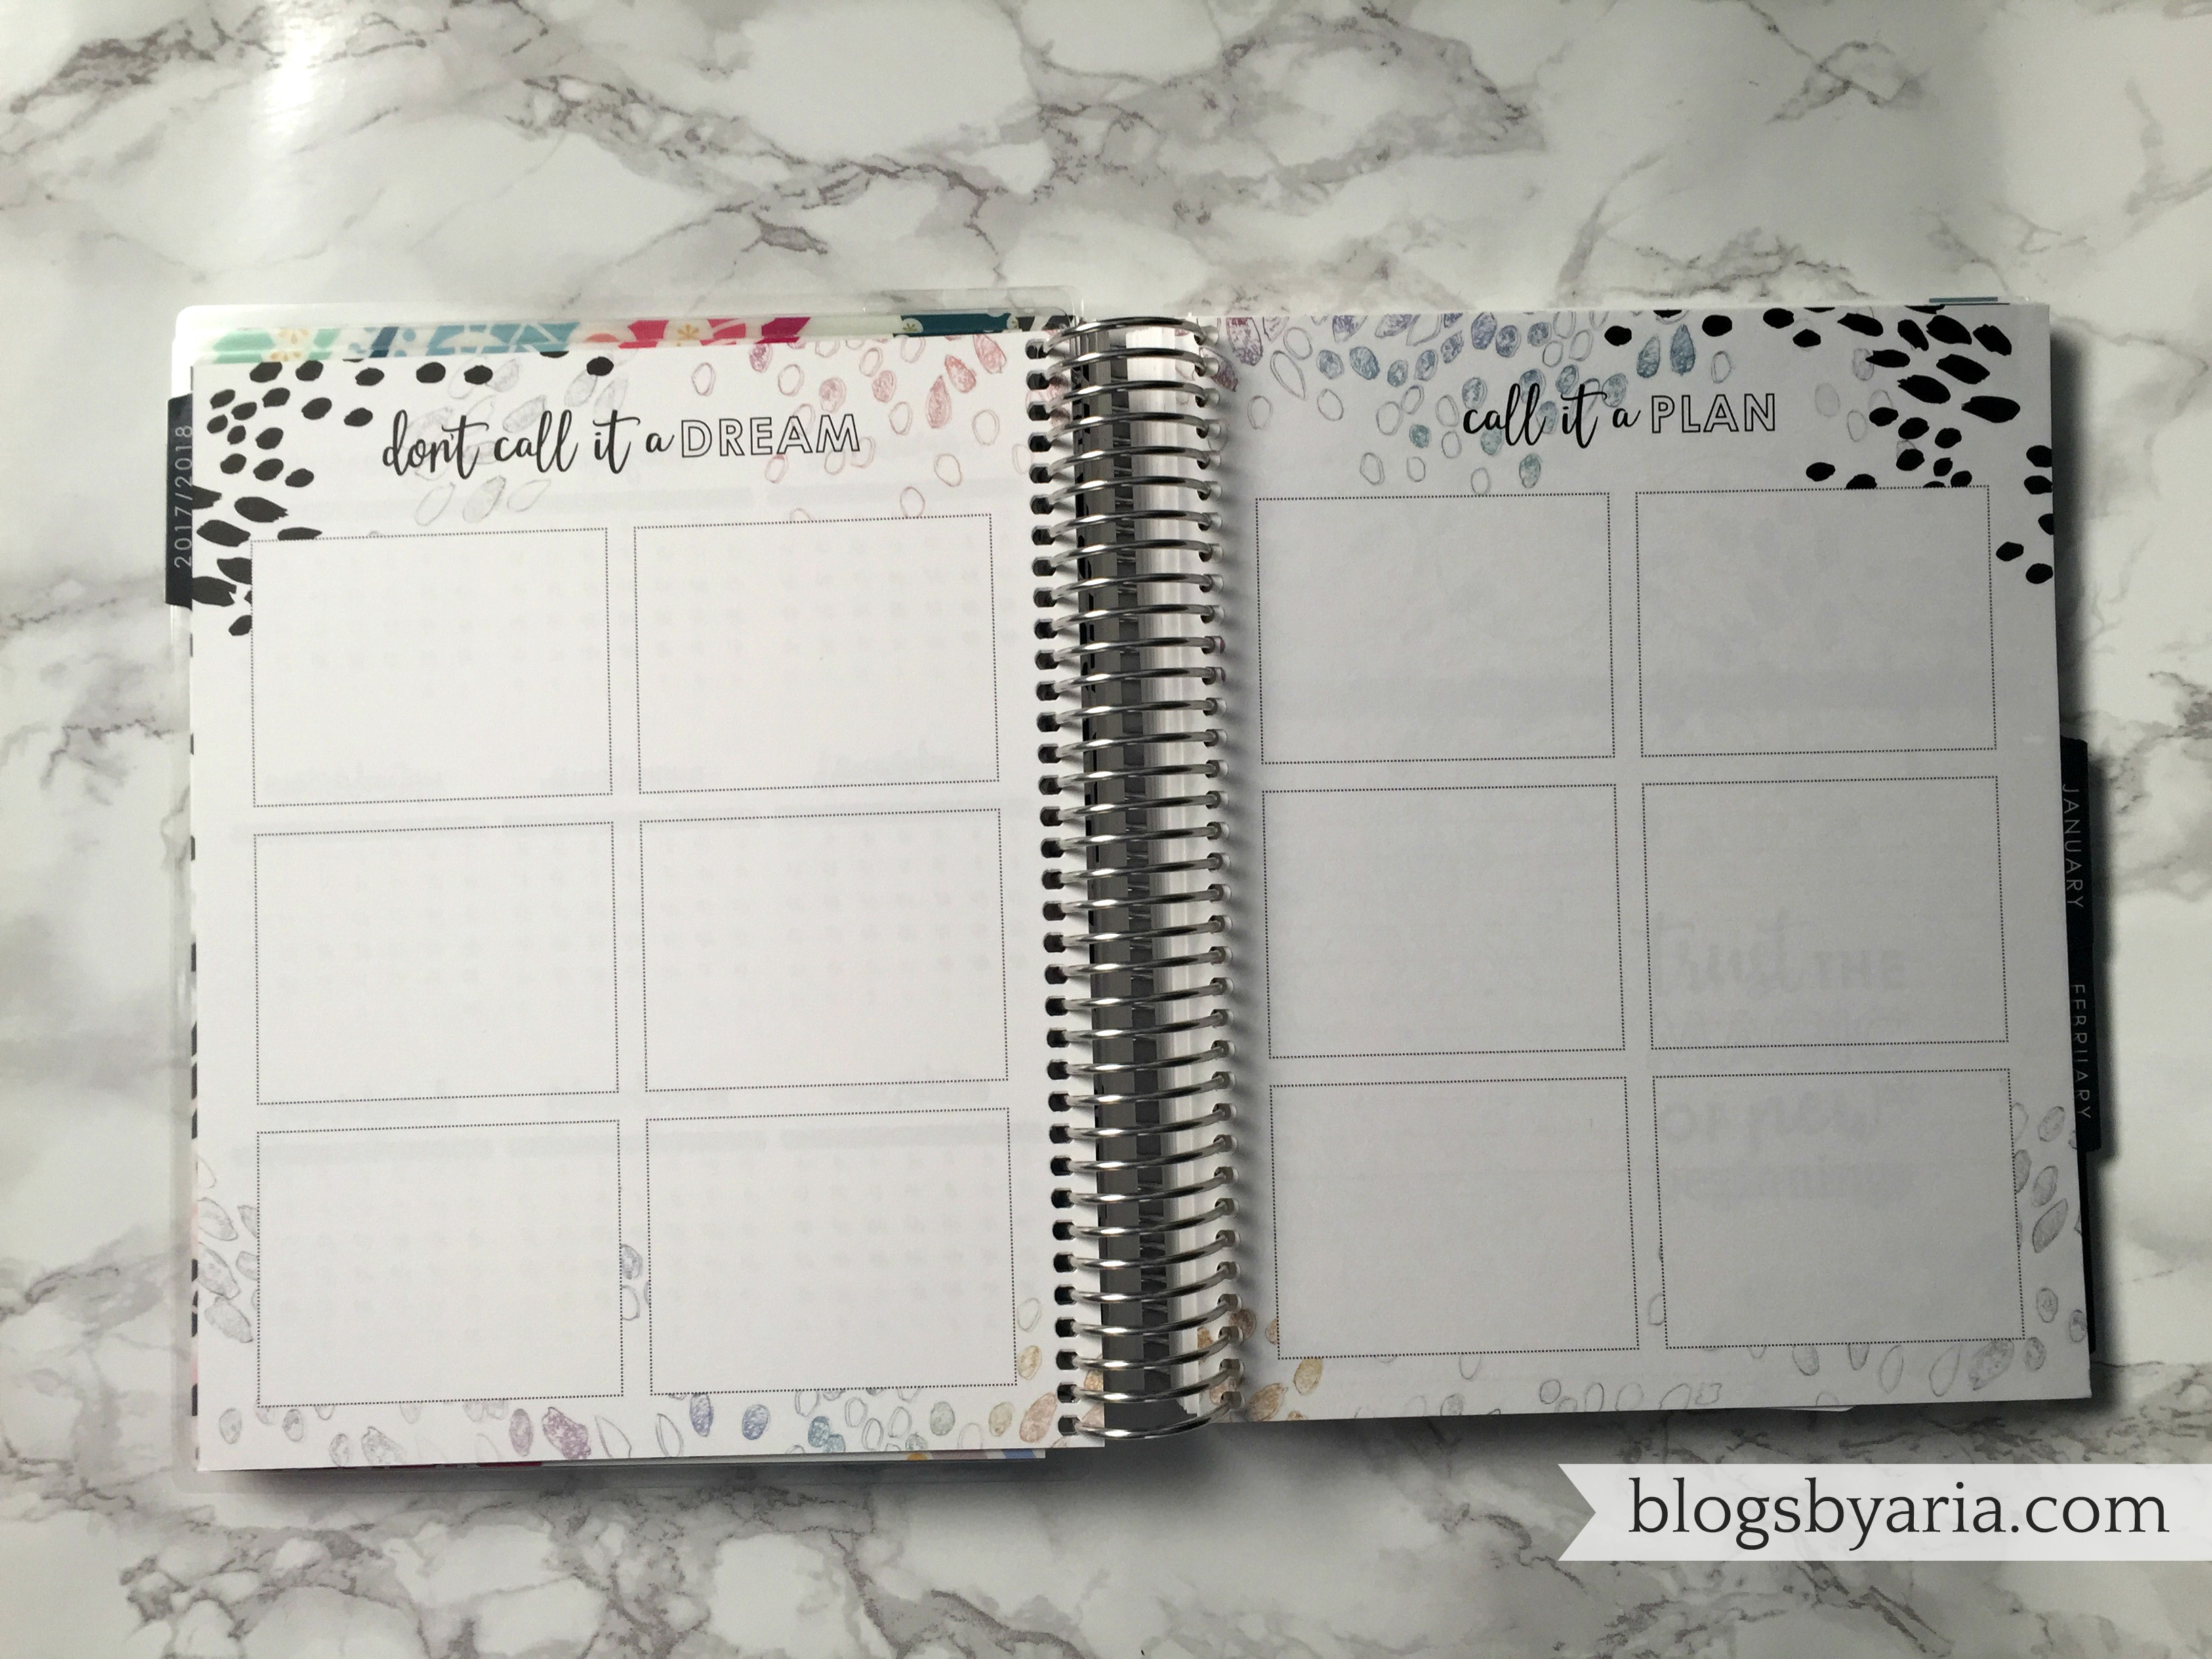 Make Goals -- Prepping Your Planner for the New Year